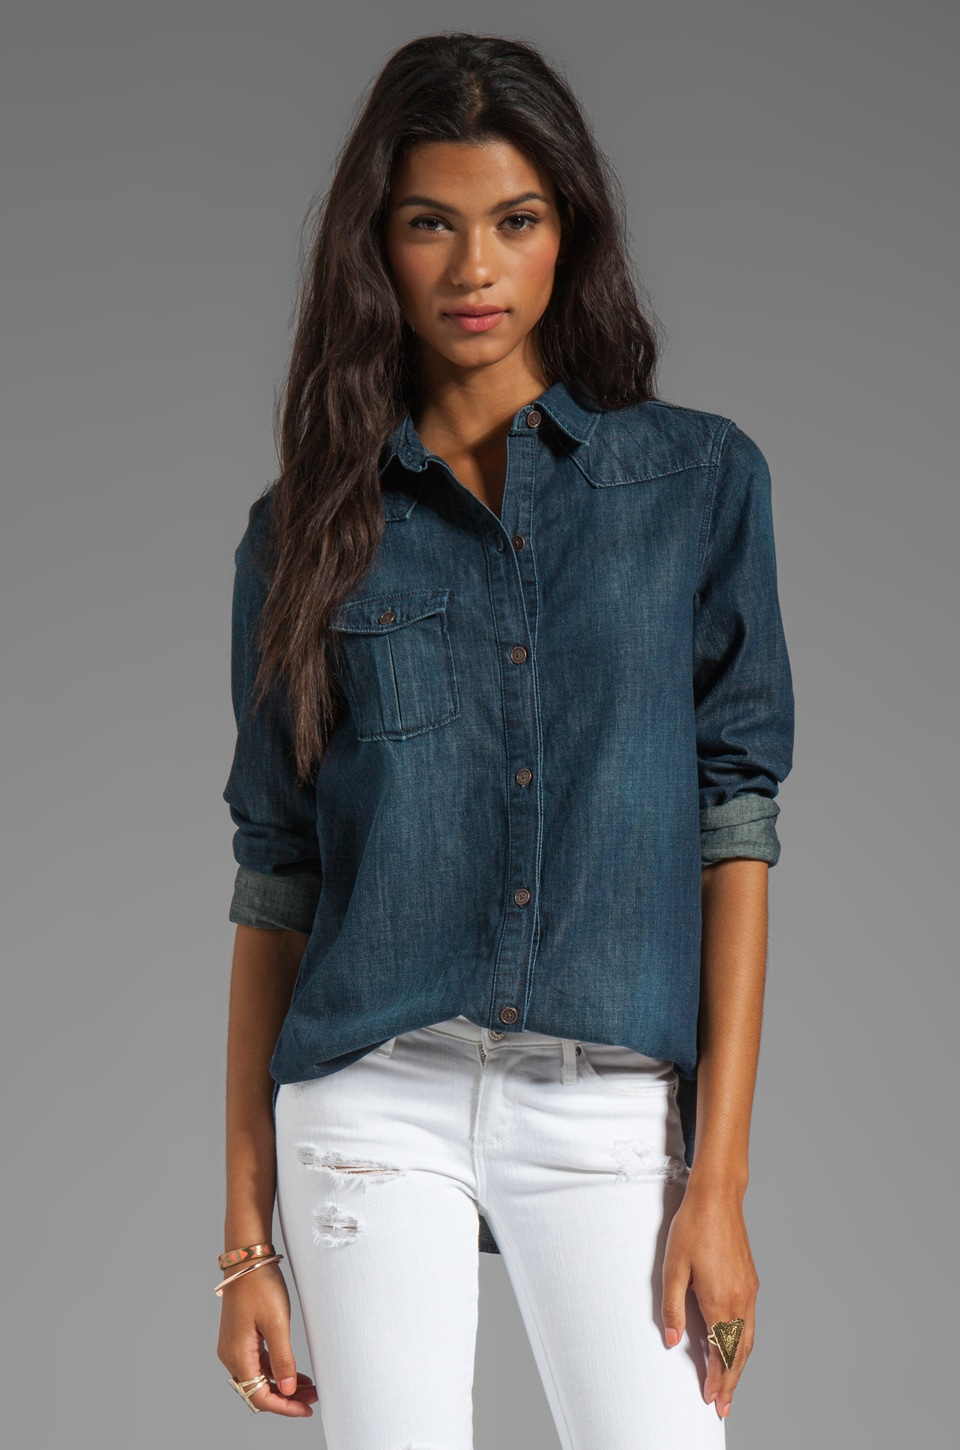 PAIGE Brooke Denim Shirt in Wayside